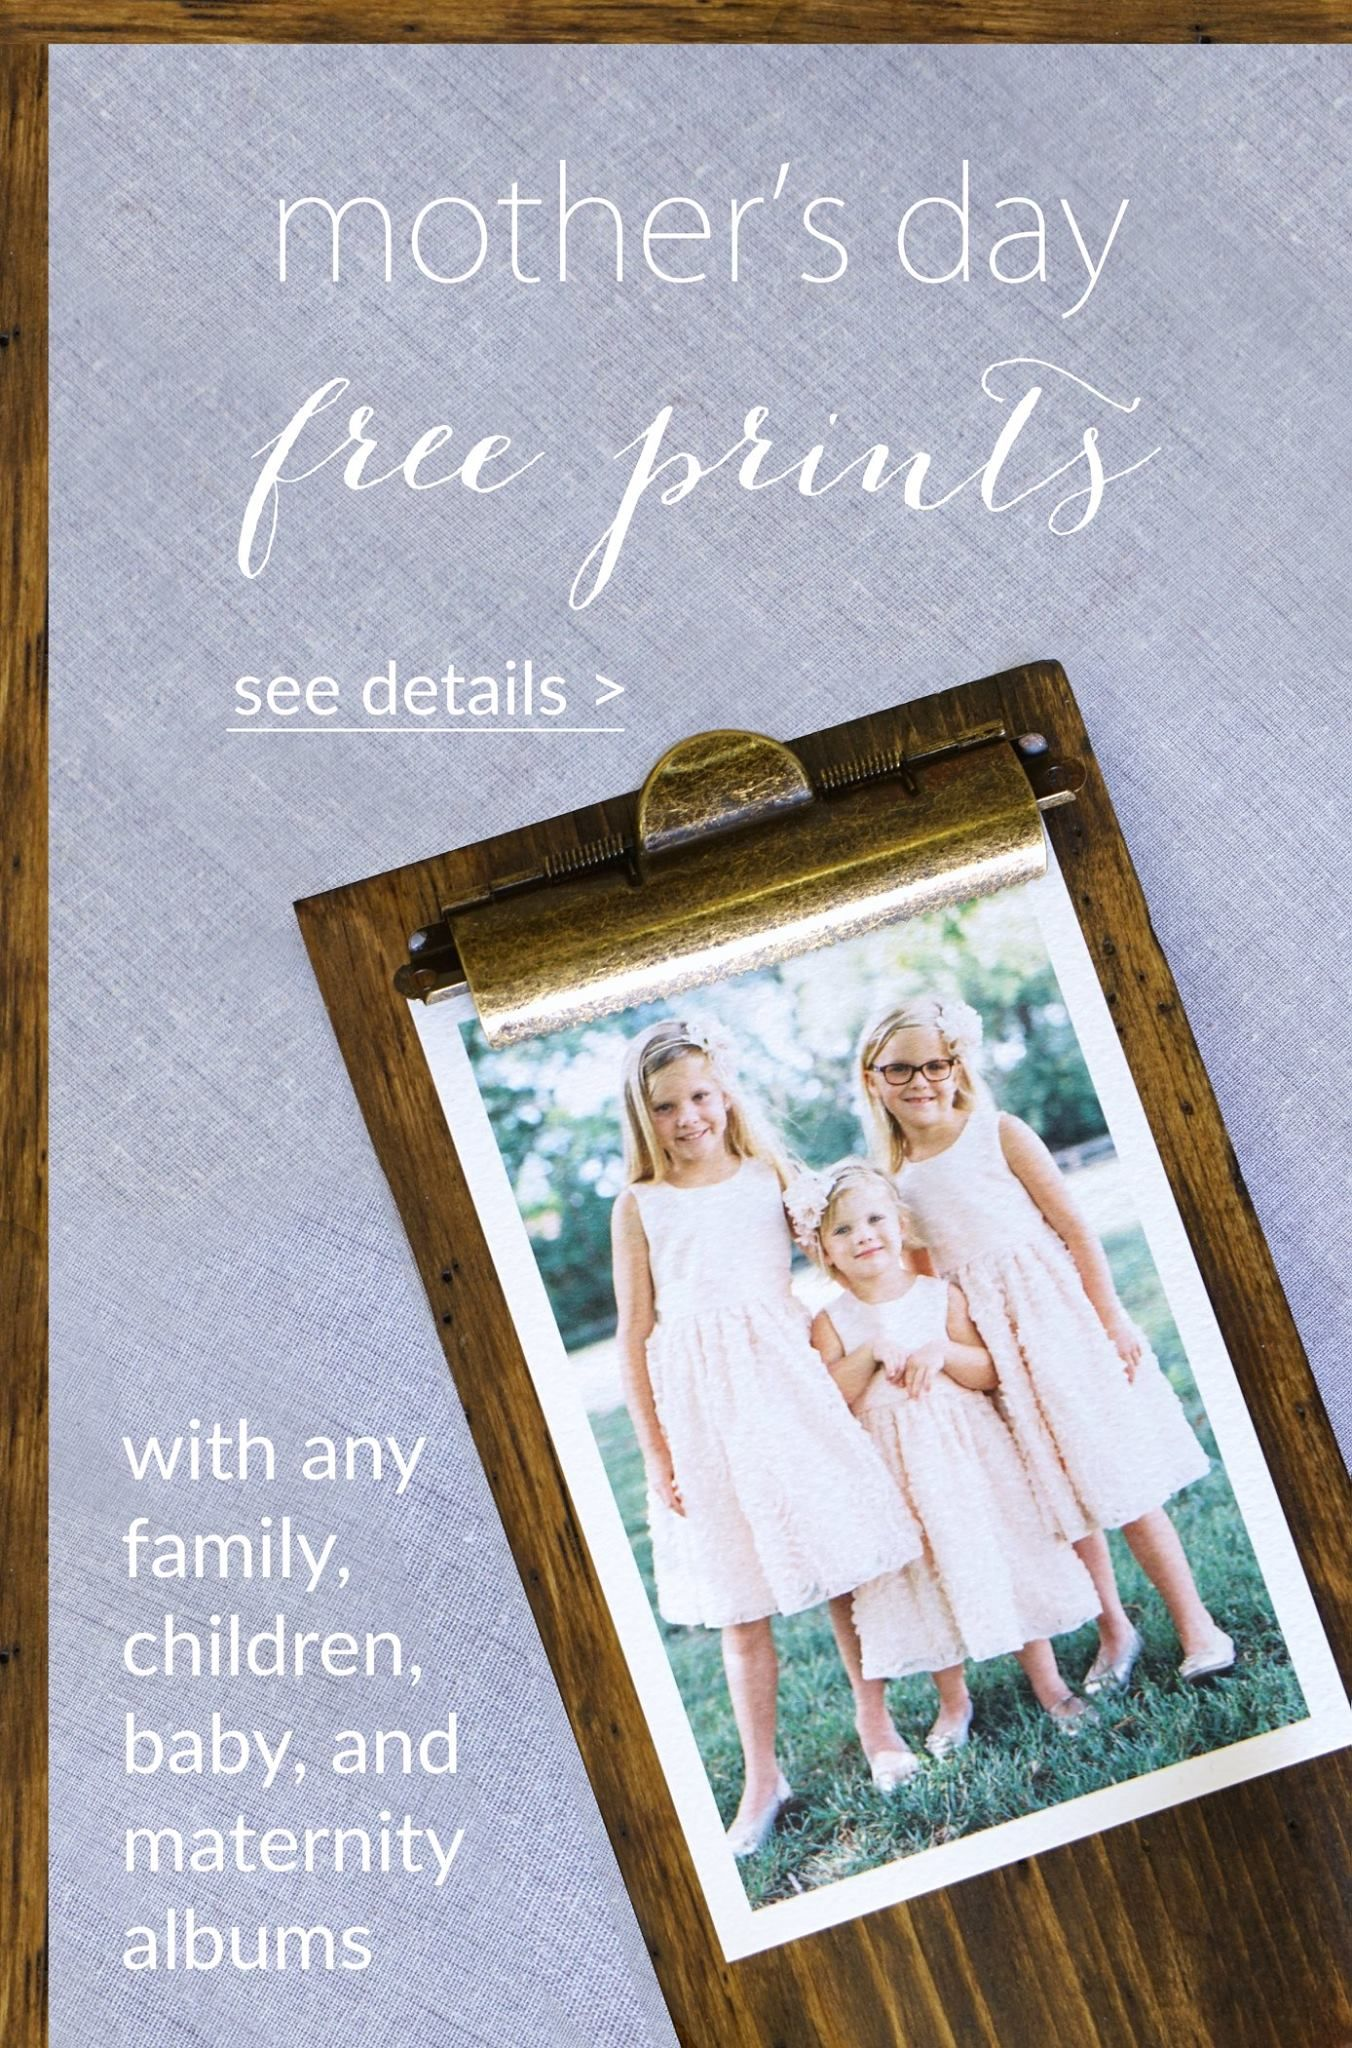 Starting Today You Can Now Get 20 Free 4x6 Prints With Each Family